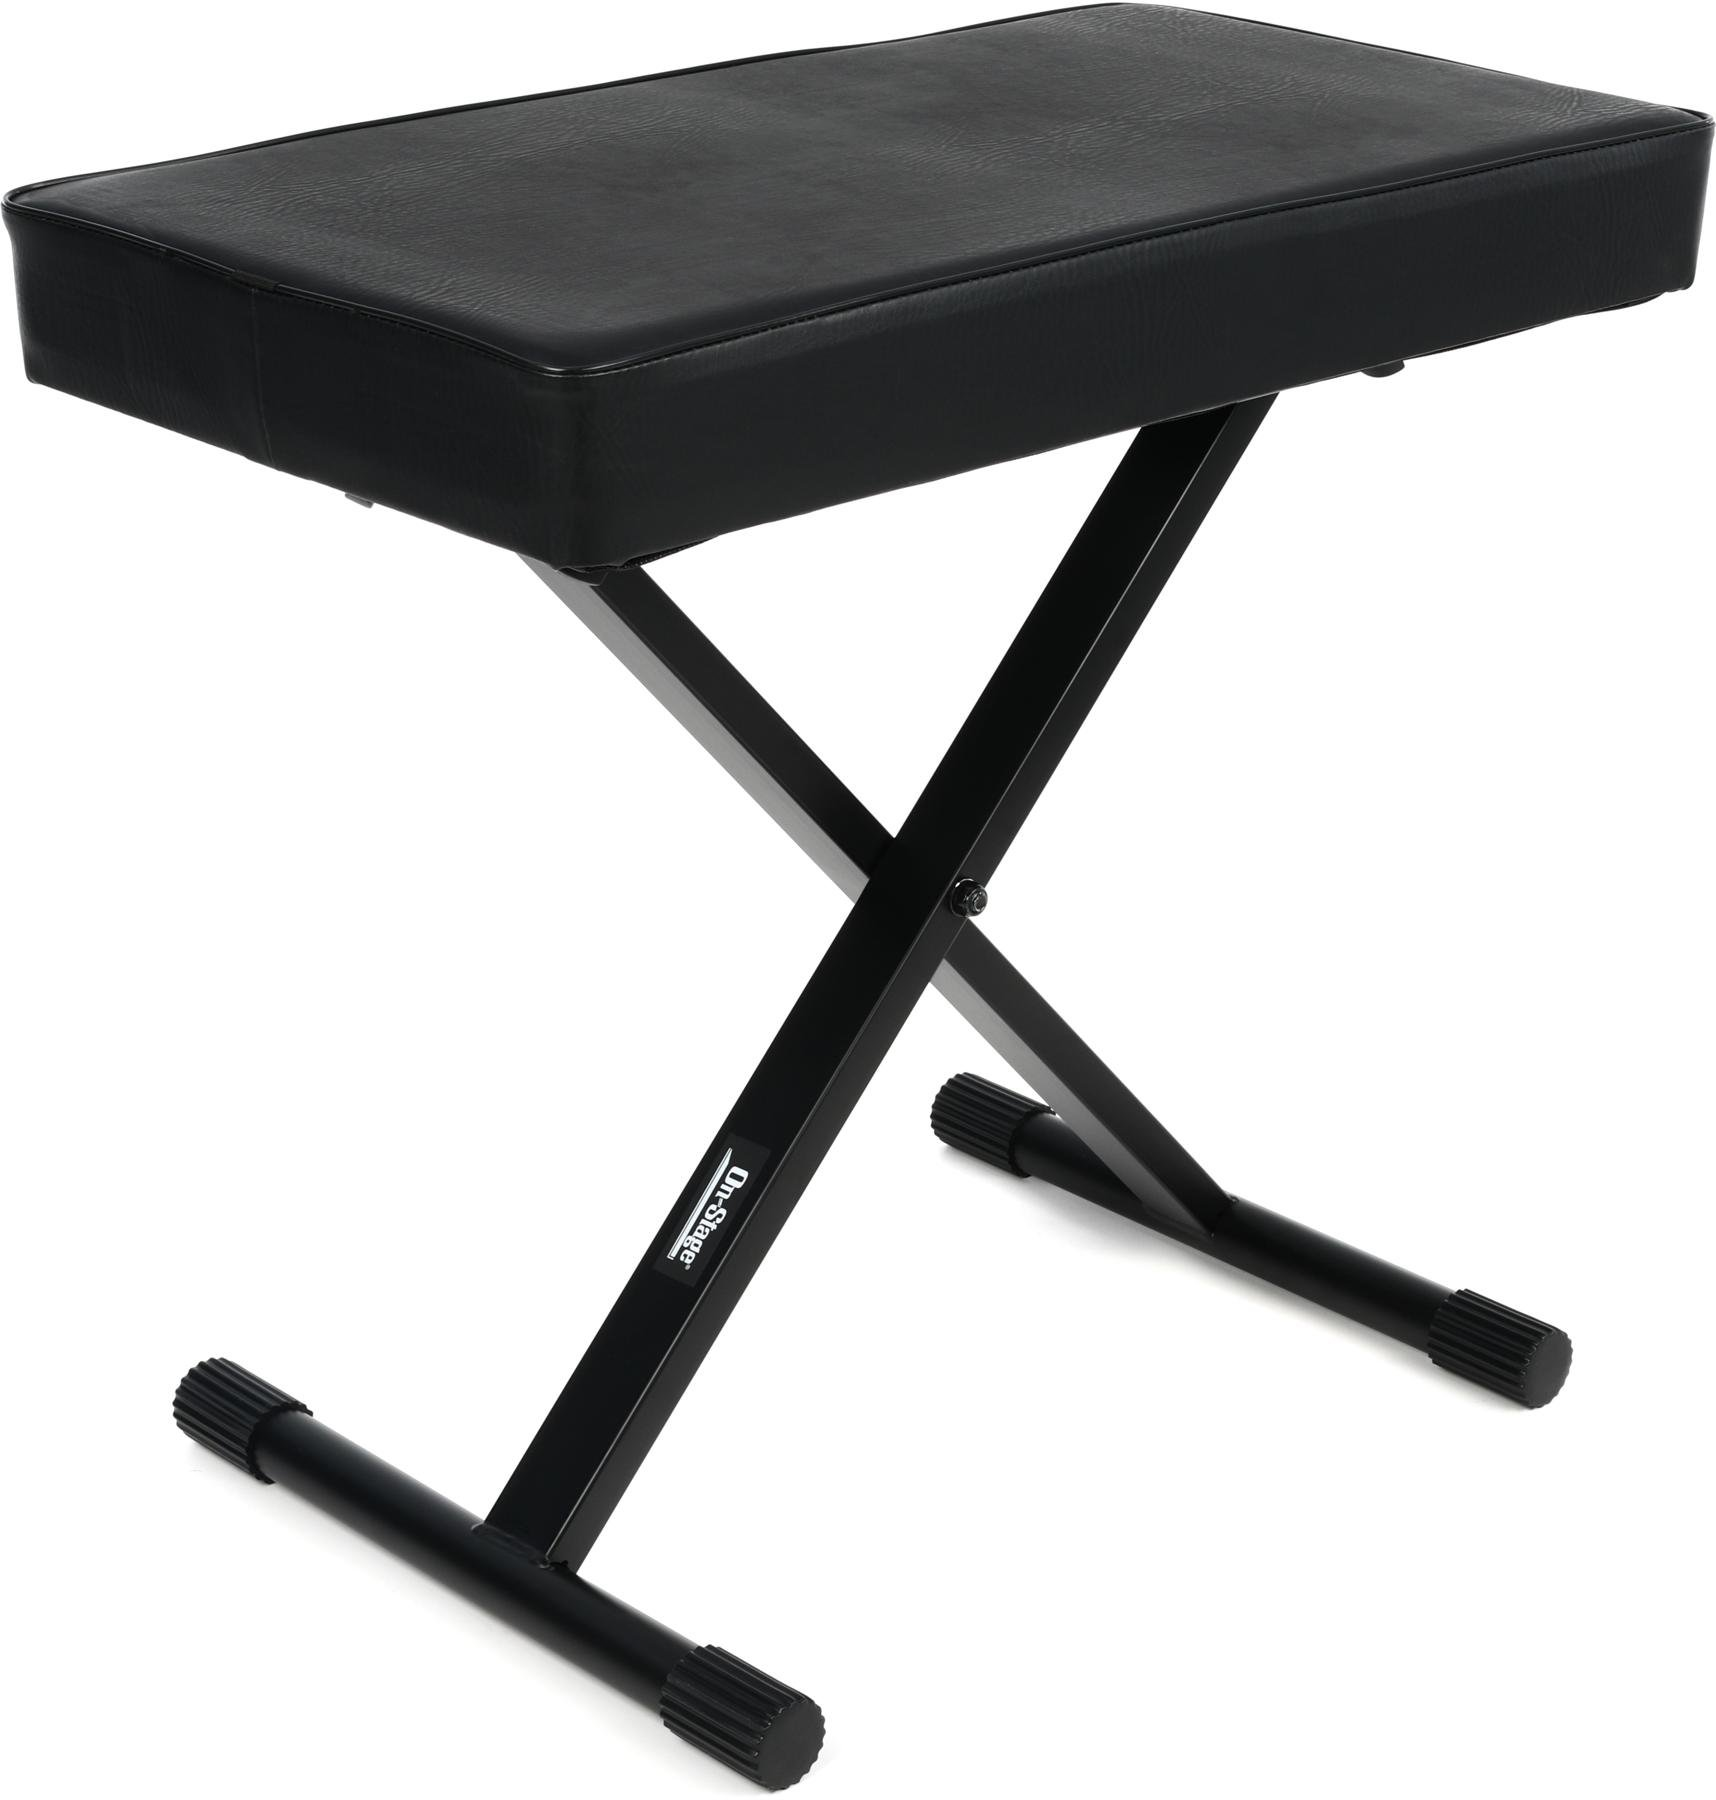 On-Stage Stands KT7800+ Deluxe X-Style Bench image 1